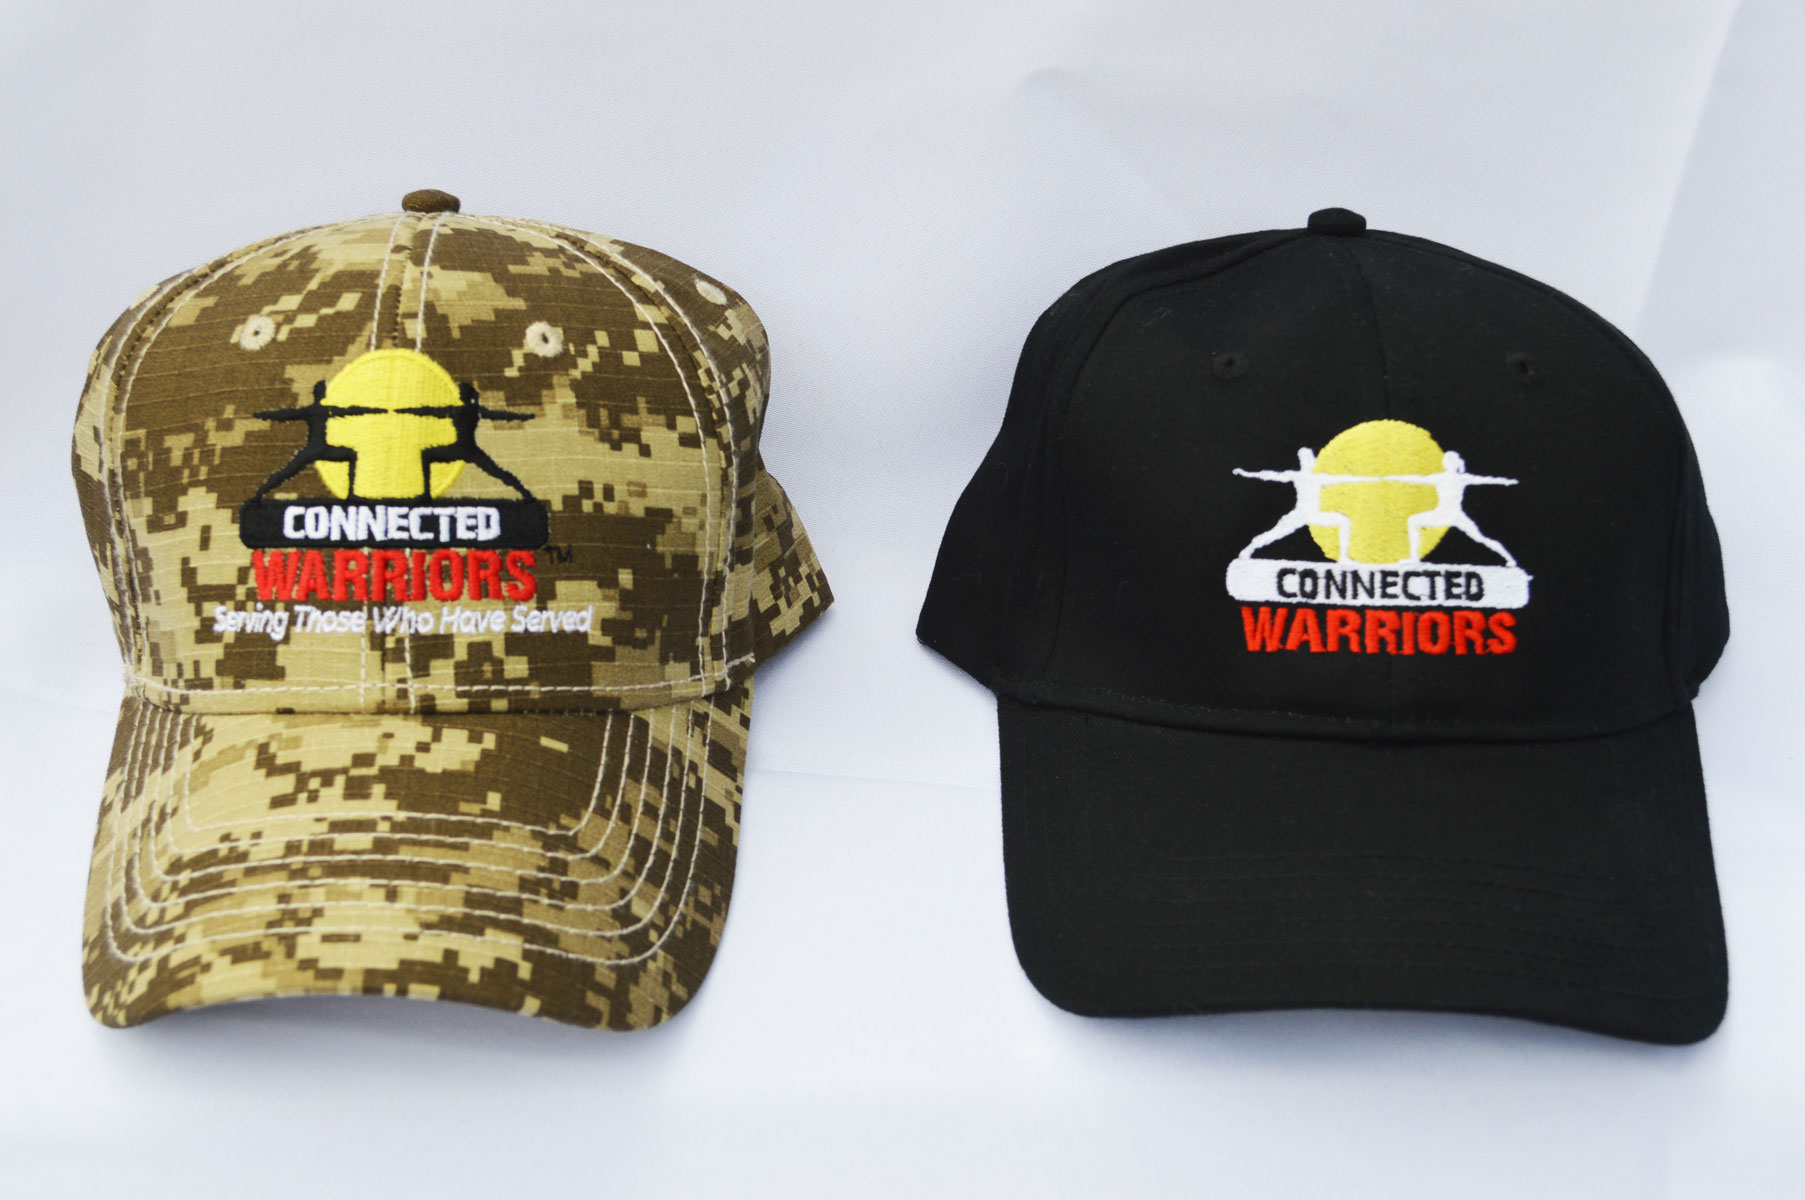 connected-warriors-black-and-camo-hats